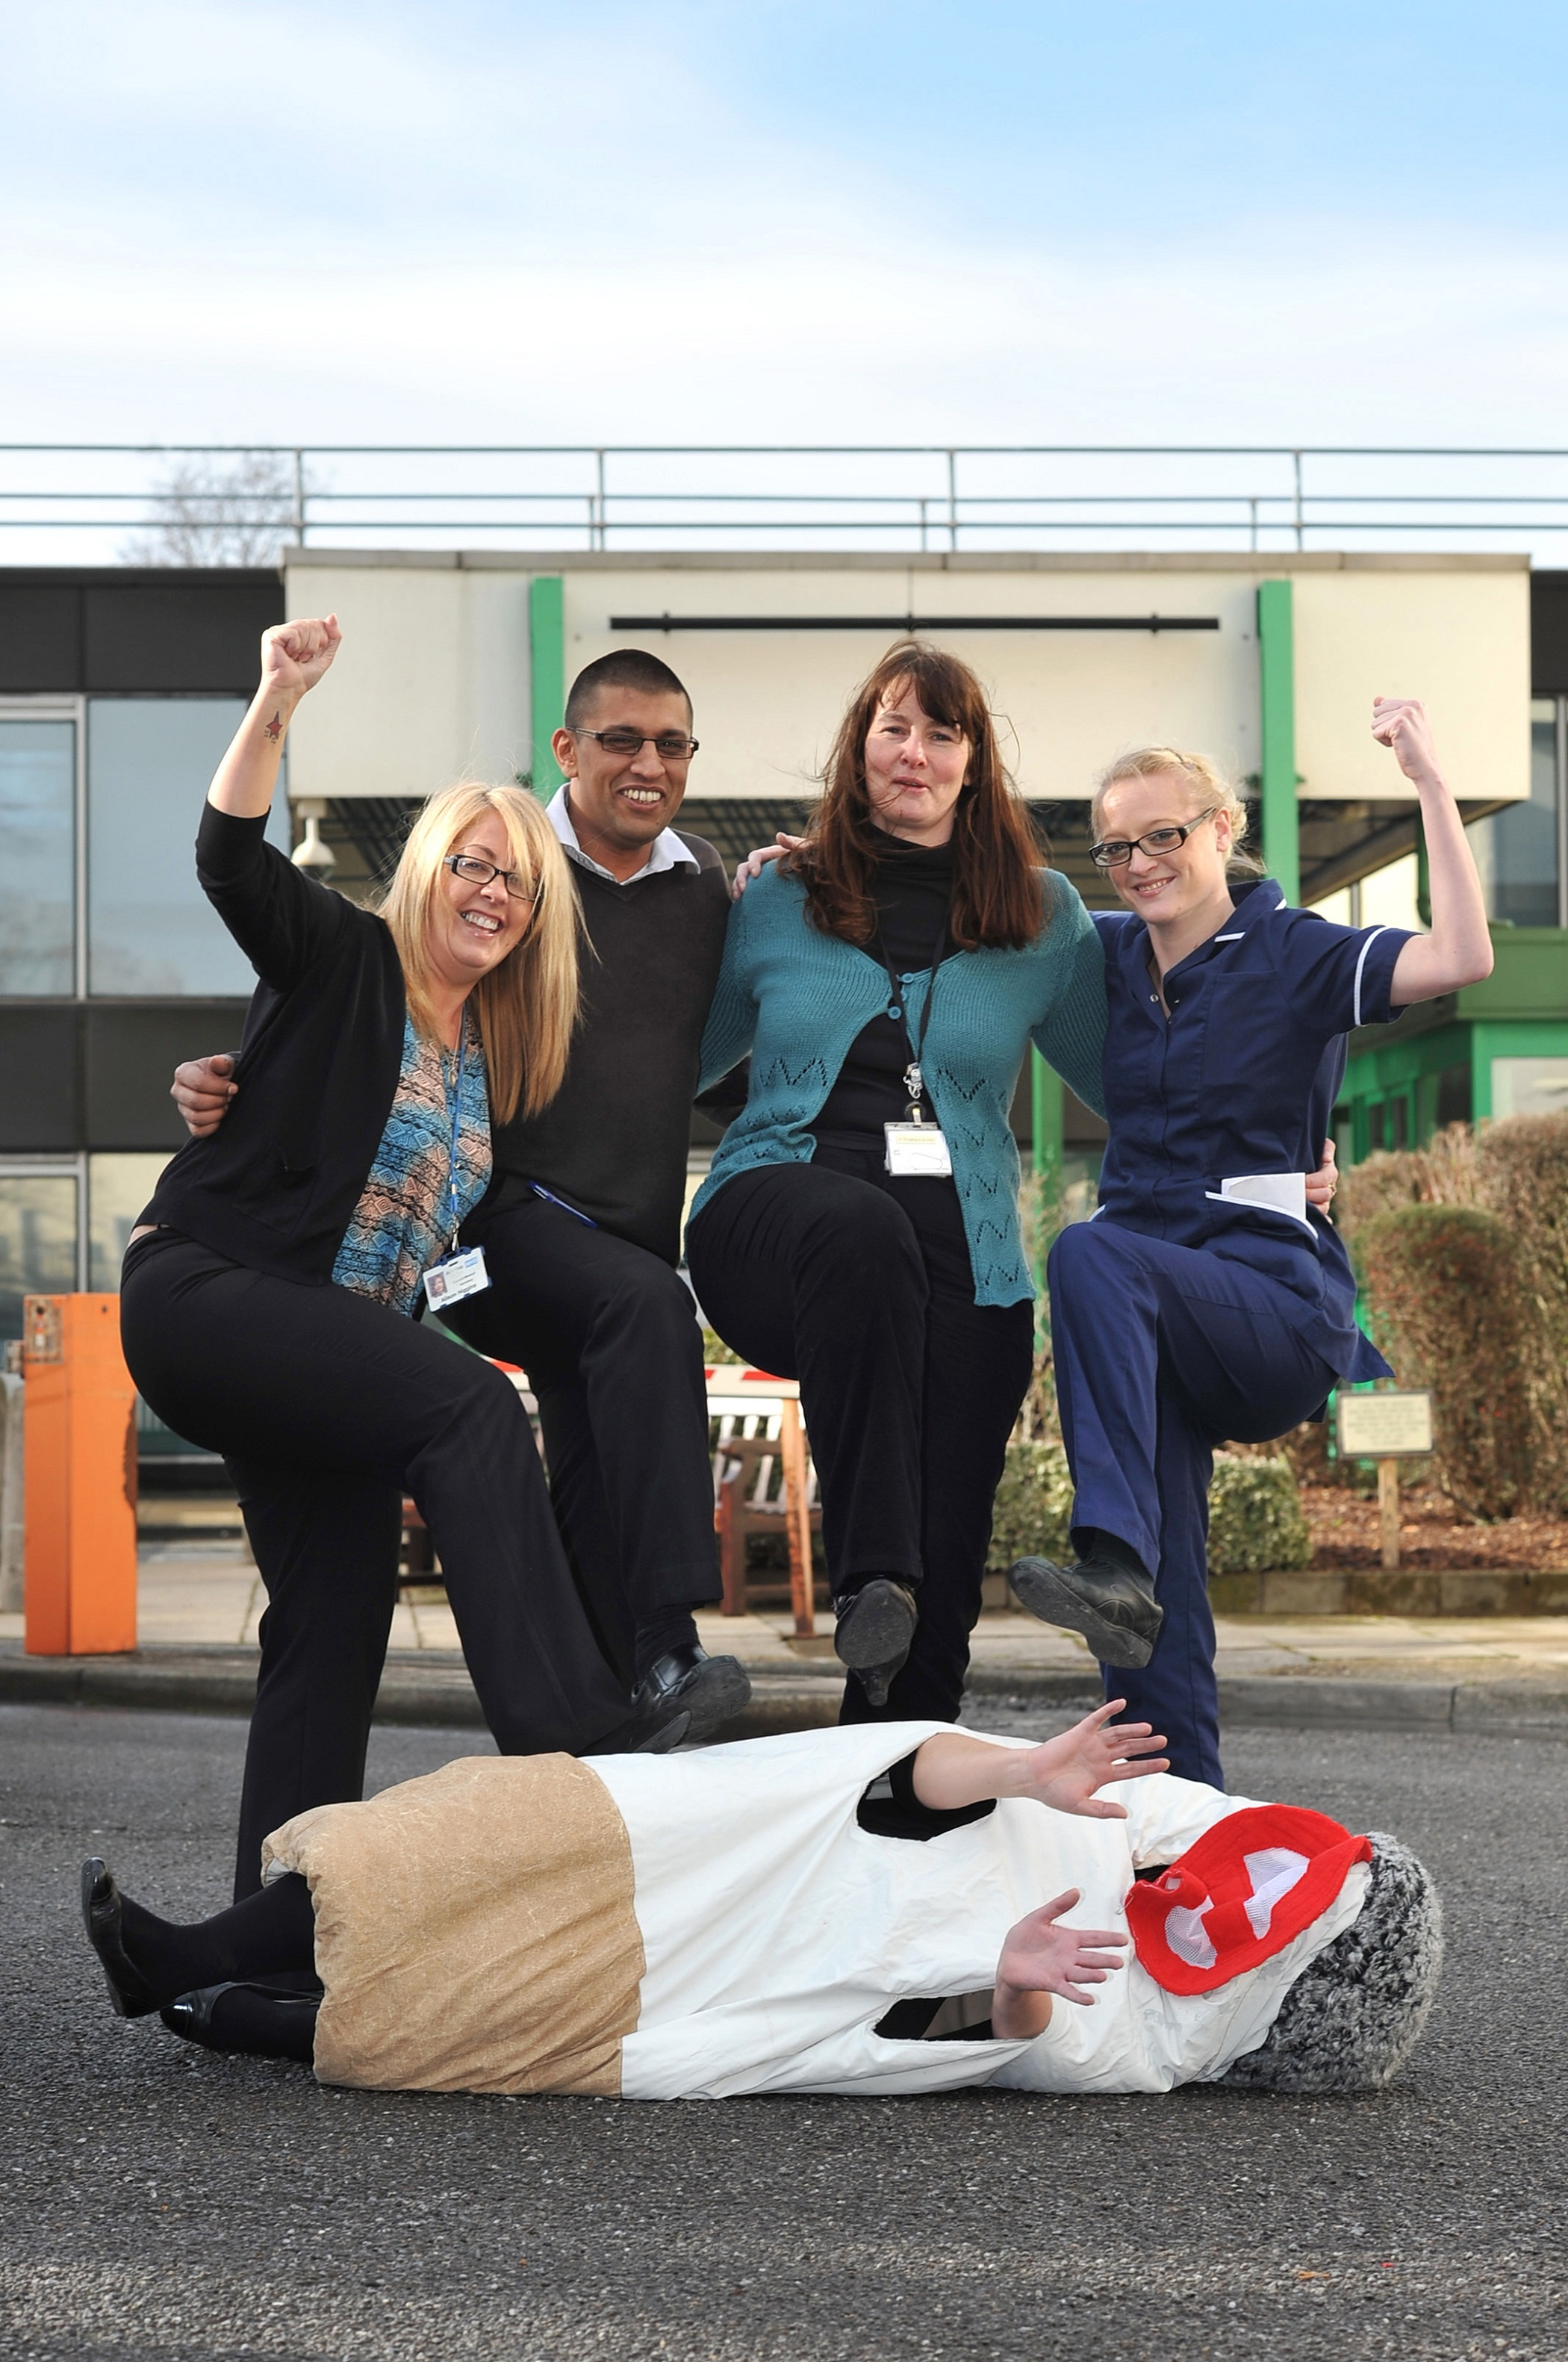 Airedale Hospital staff celebrate their victory over cigarette smoke. From left, Alison Higgins, Shahid Rashid, IT Helpdesk; Amanda Bailey, stop-smoking adviser; and Catherine Bramley